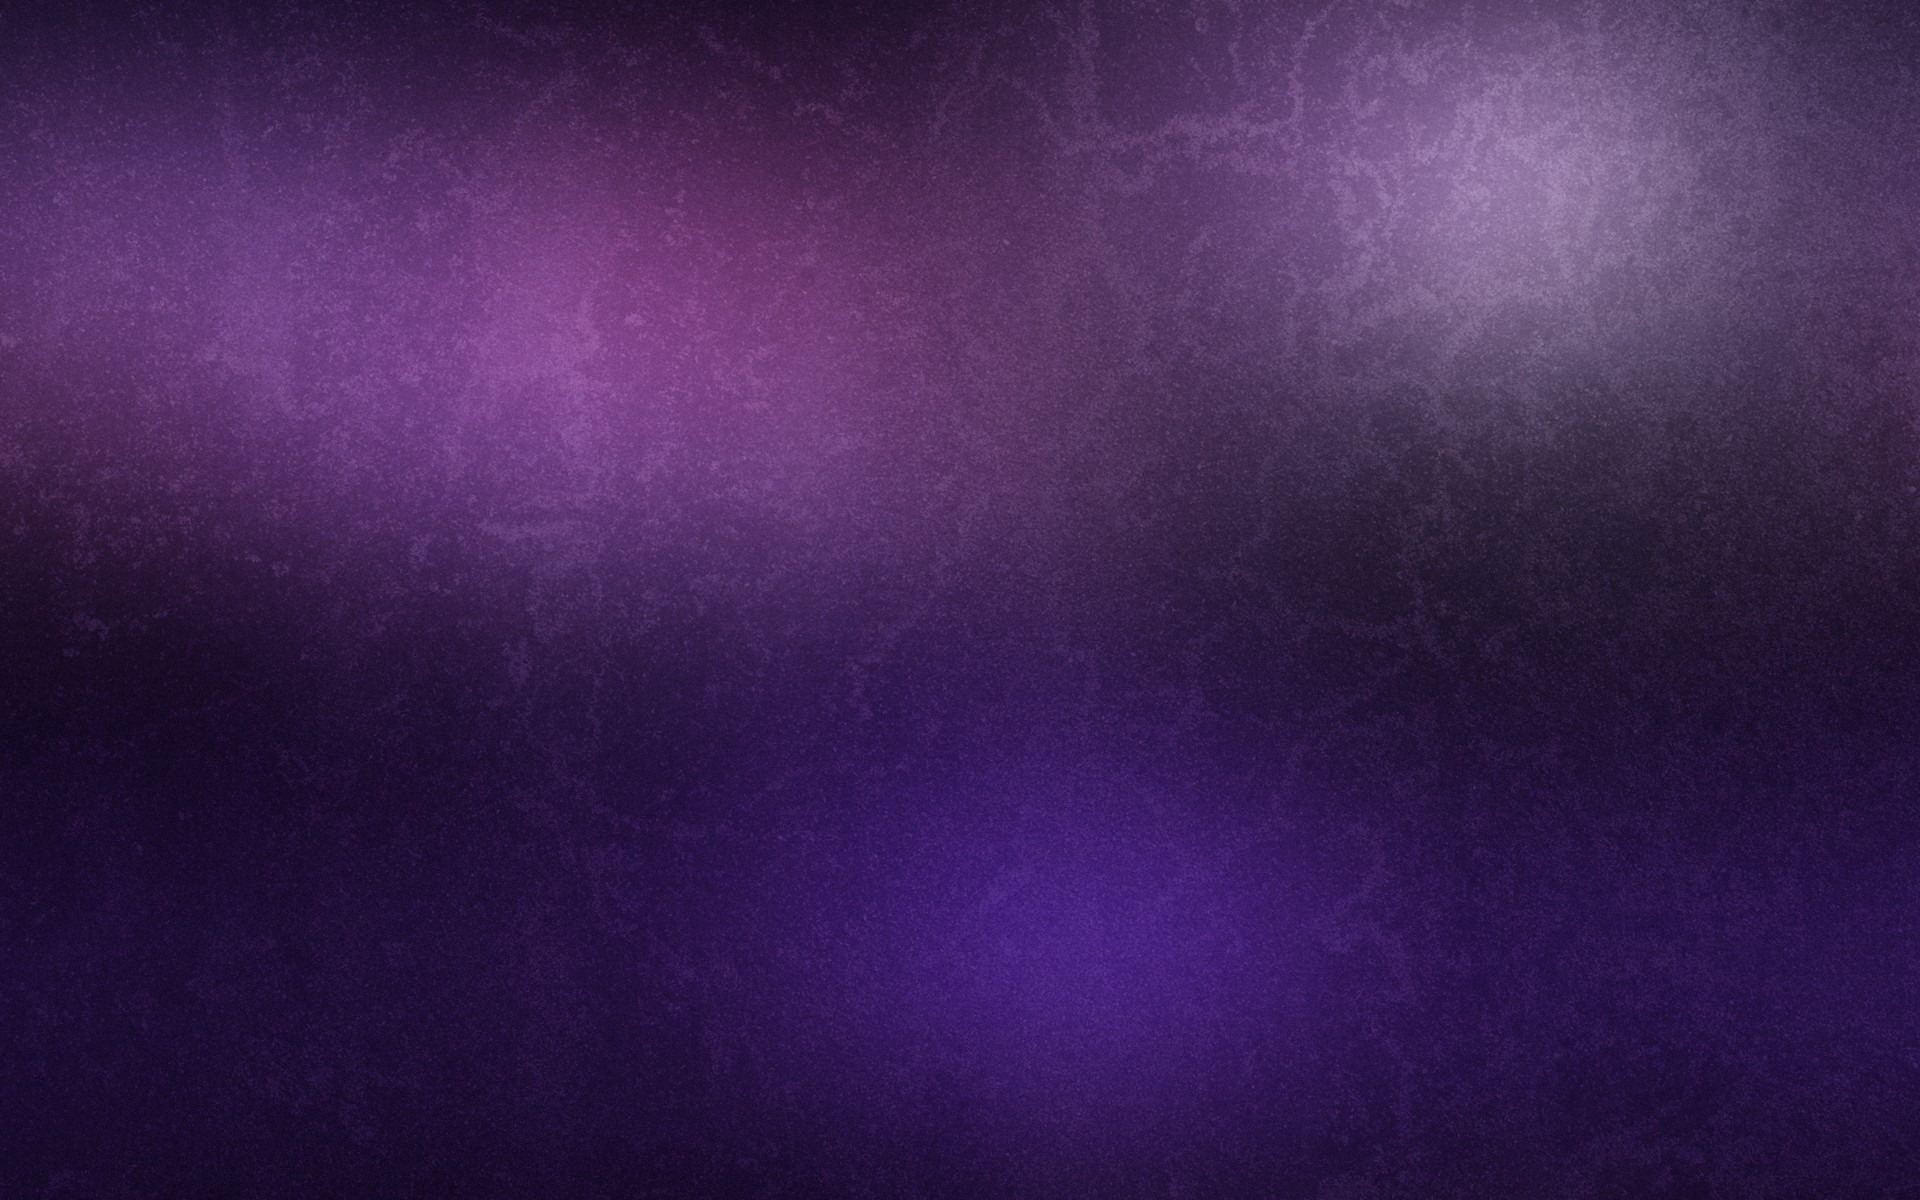 Purple Iphone 6 Wallpaper 14276 Wallpaper: Orange And Purple Backgrounds (53+ Images